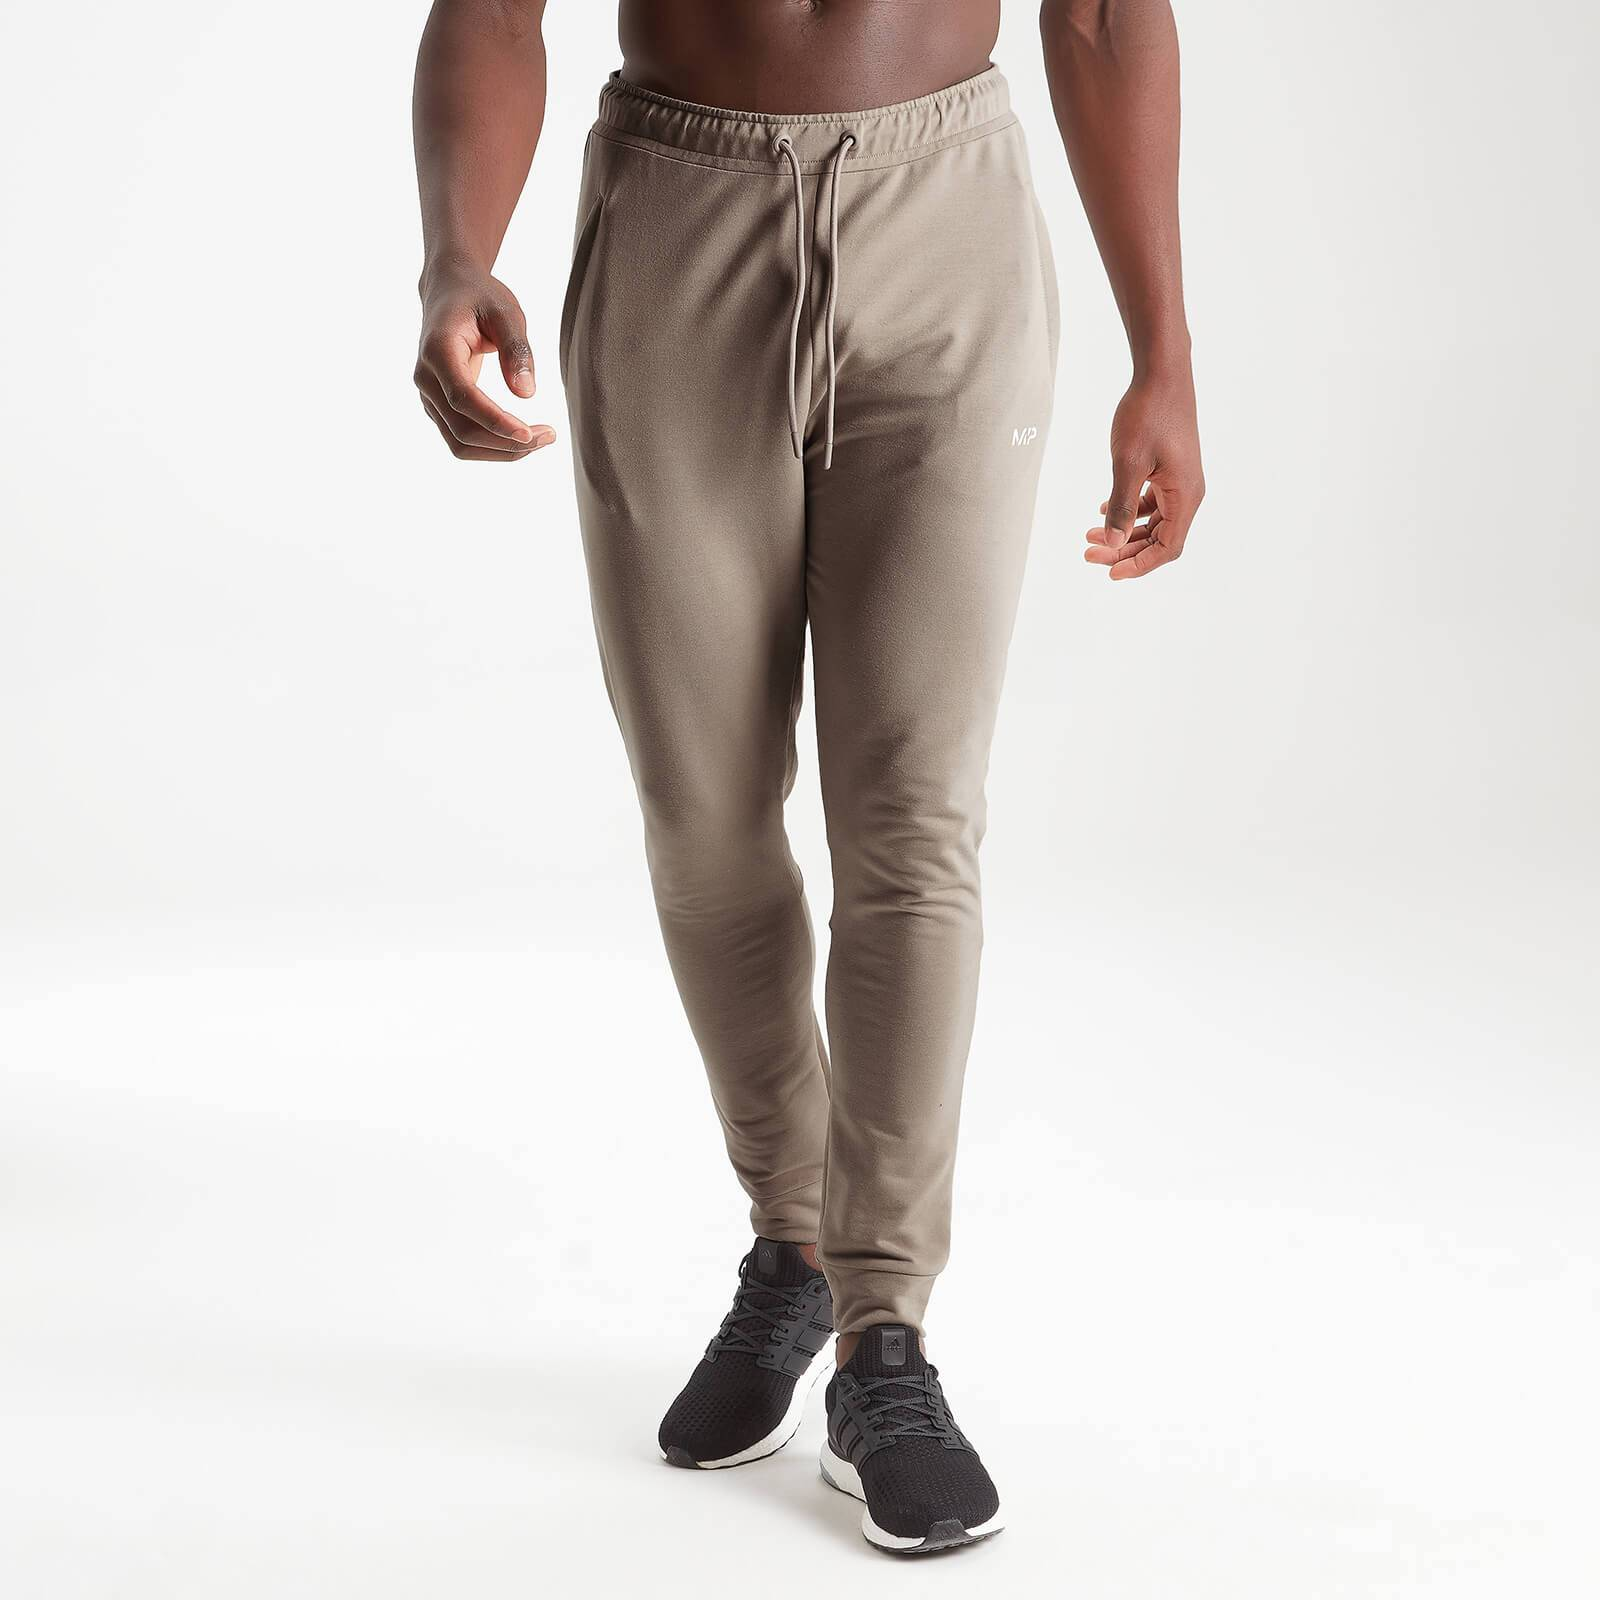 Mp Men's Form Slim Fit Joggers - Taupe - S